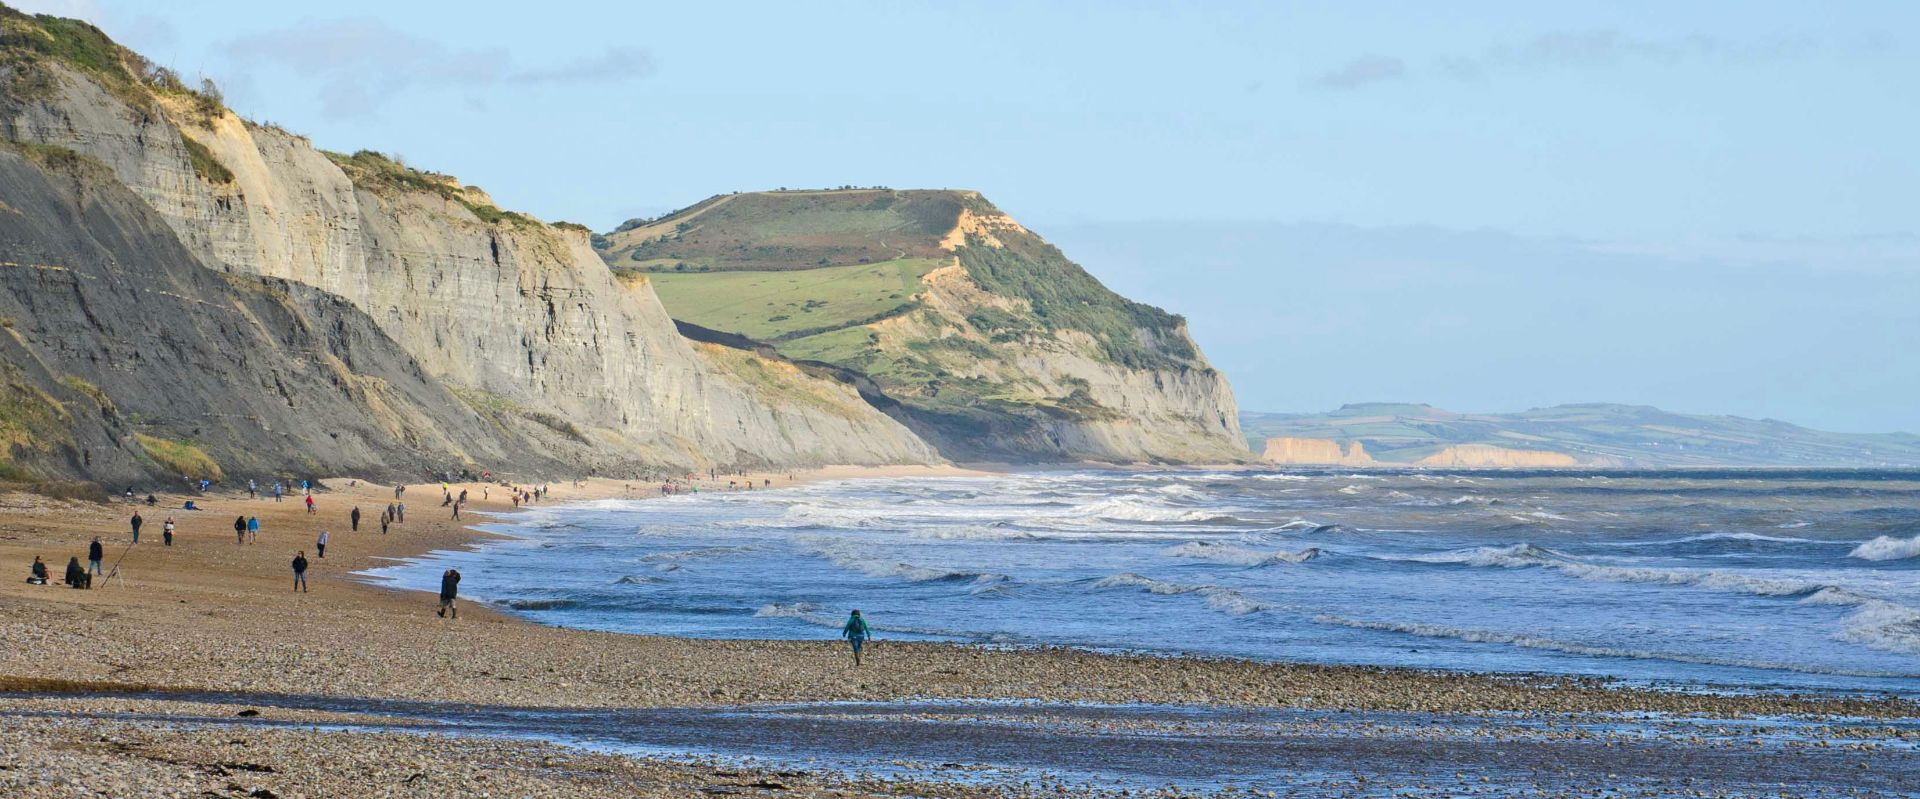 View along the beach at Charmouth on the Jurassic Coast